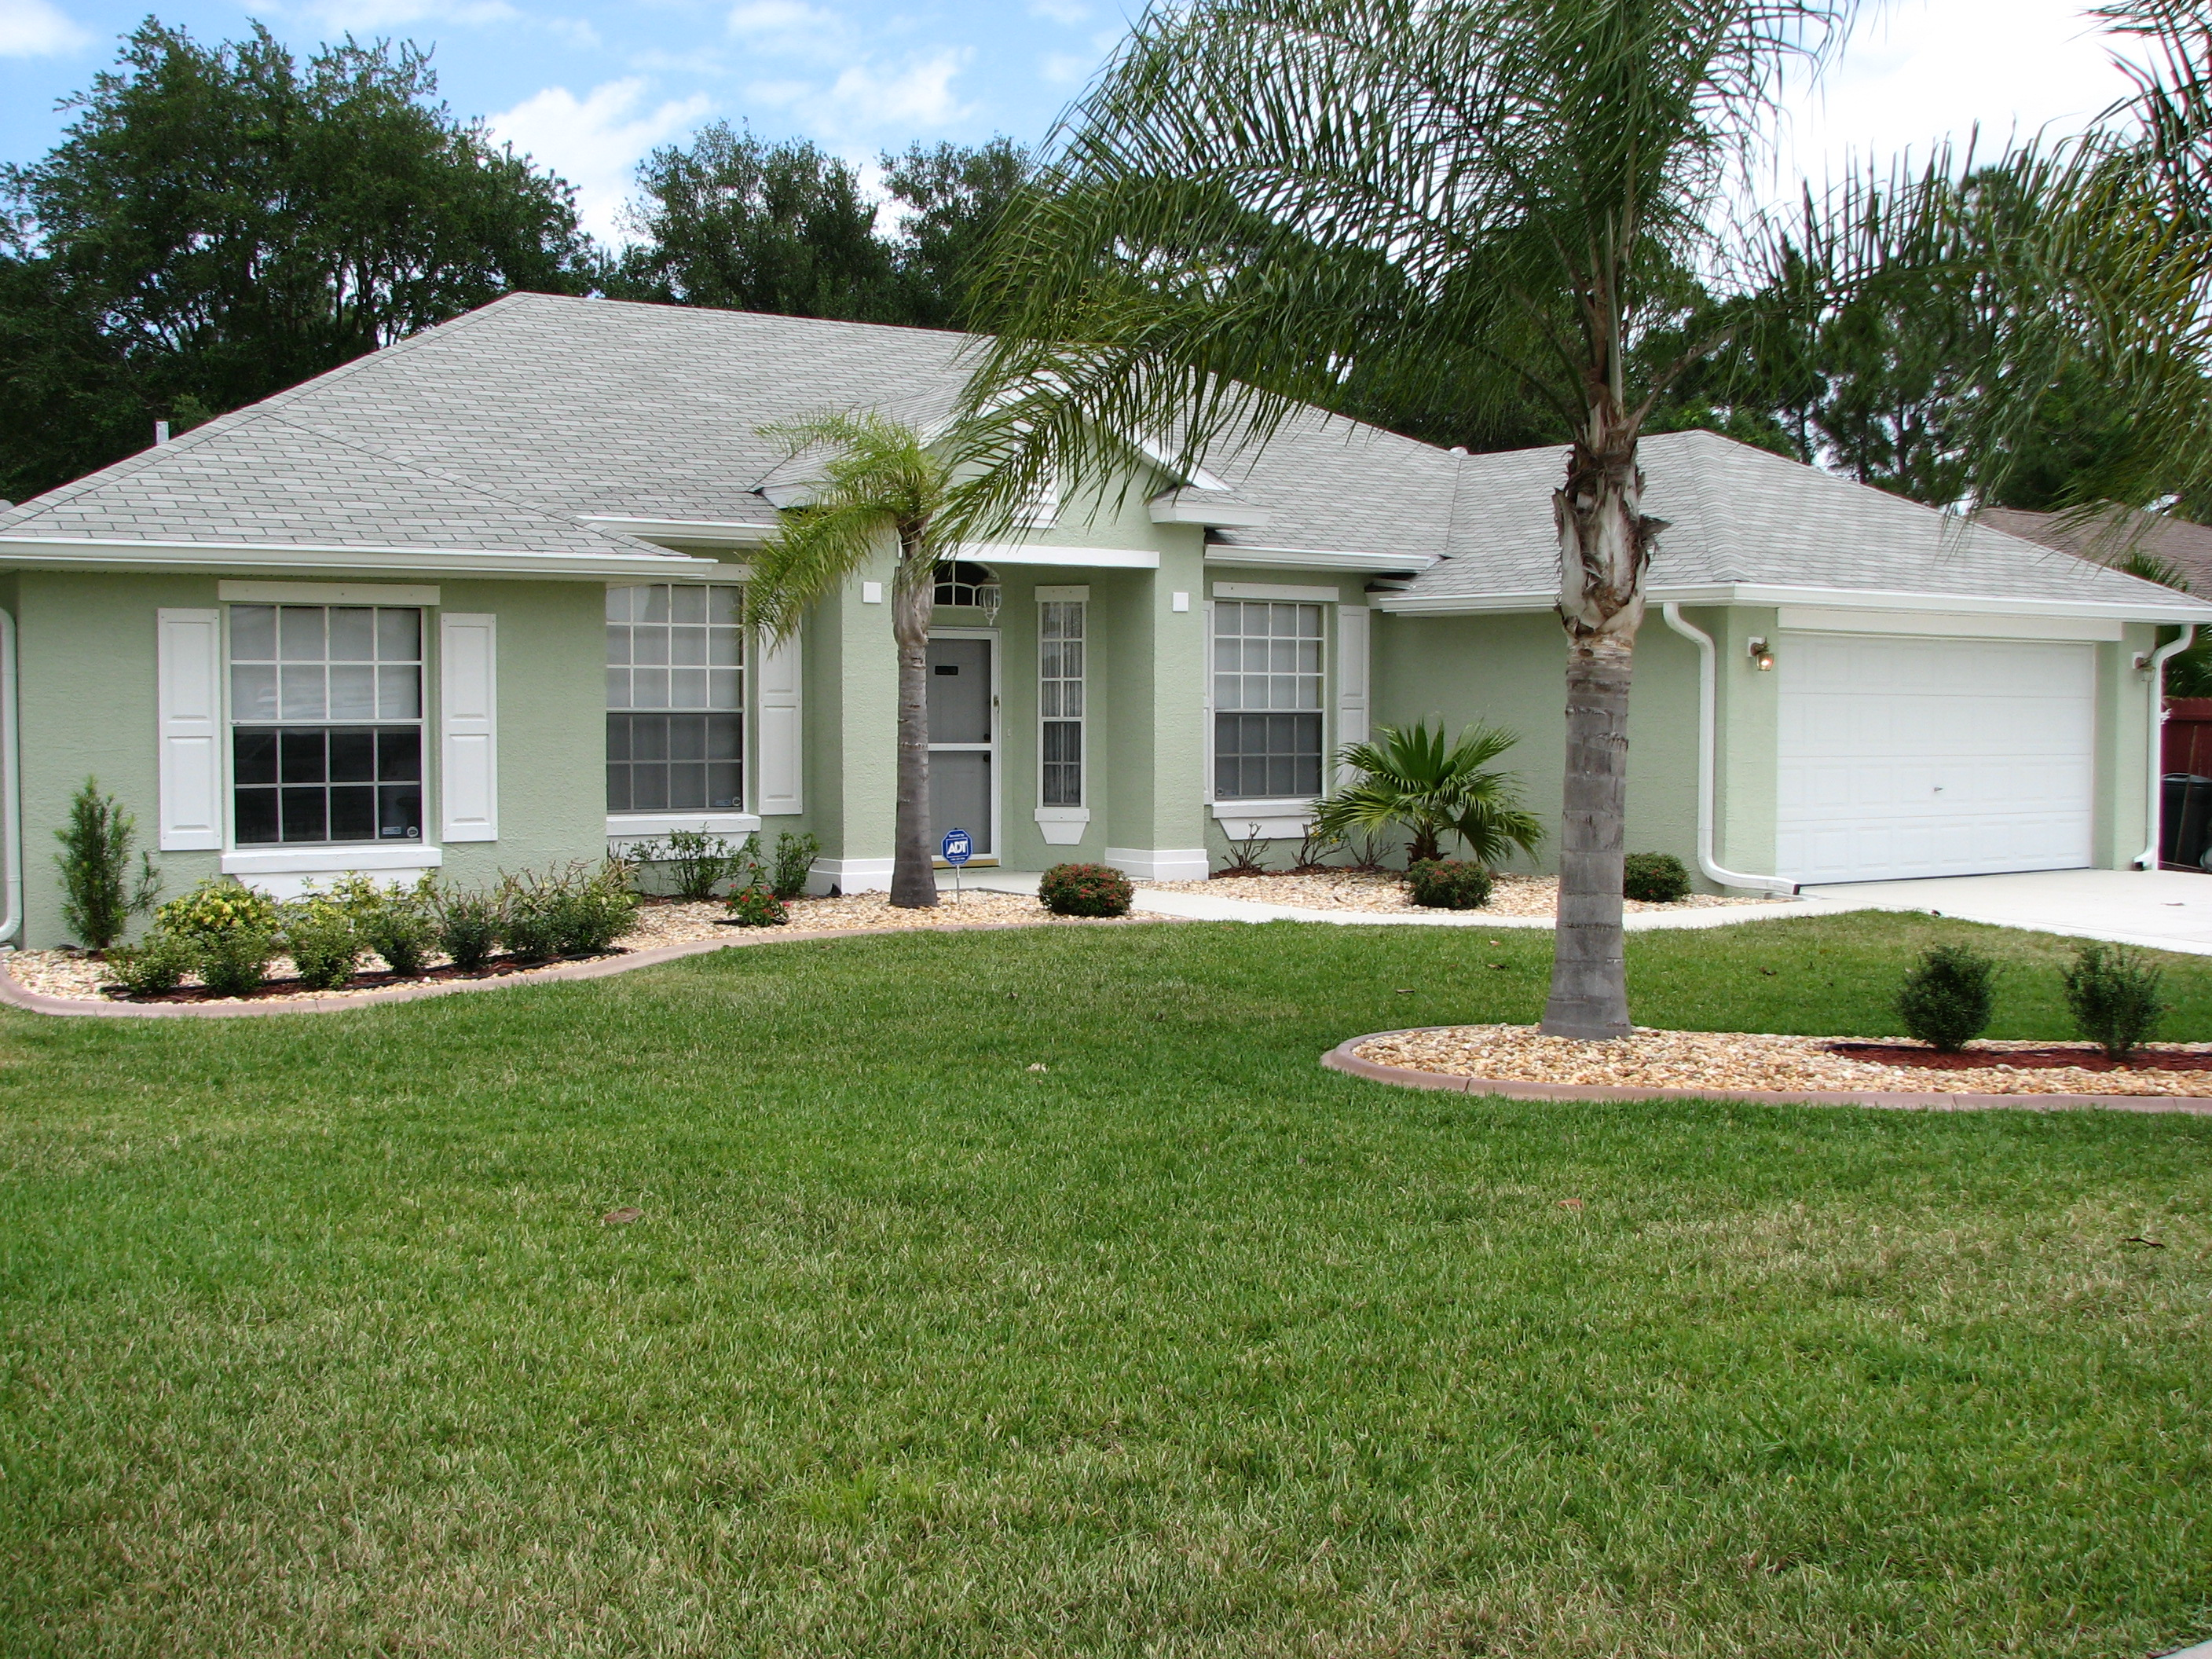 Cocoa fl exterior house painting project by peck painting for Home painting images